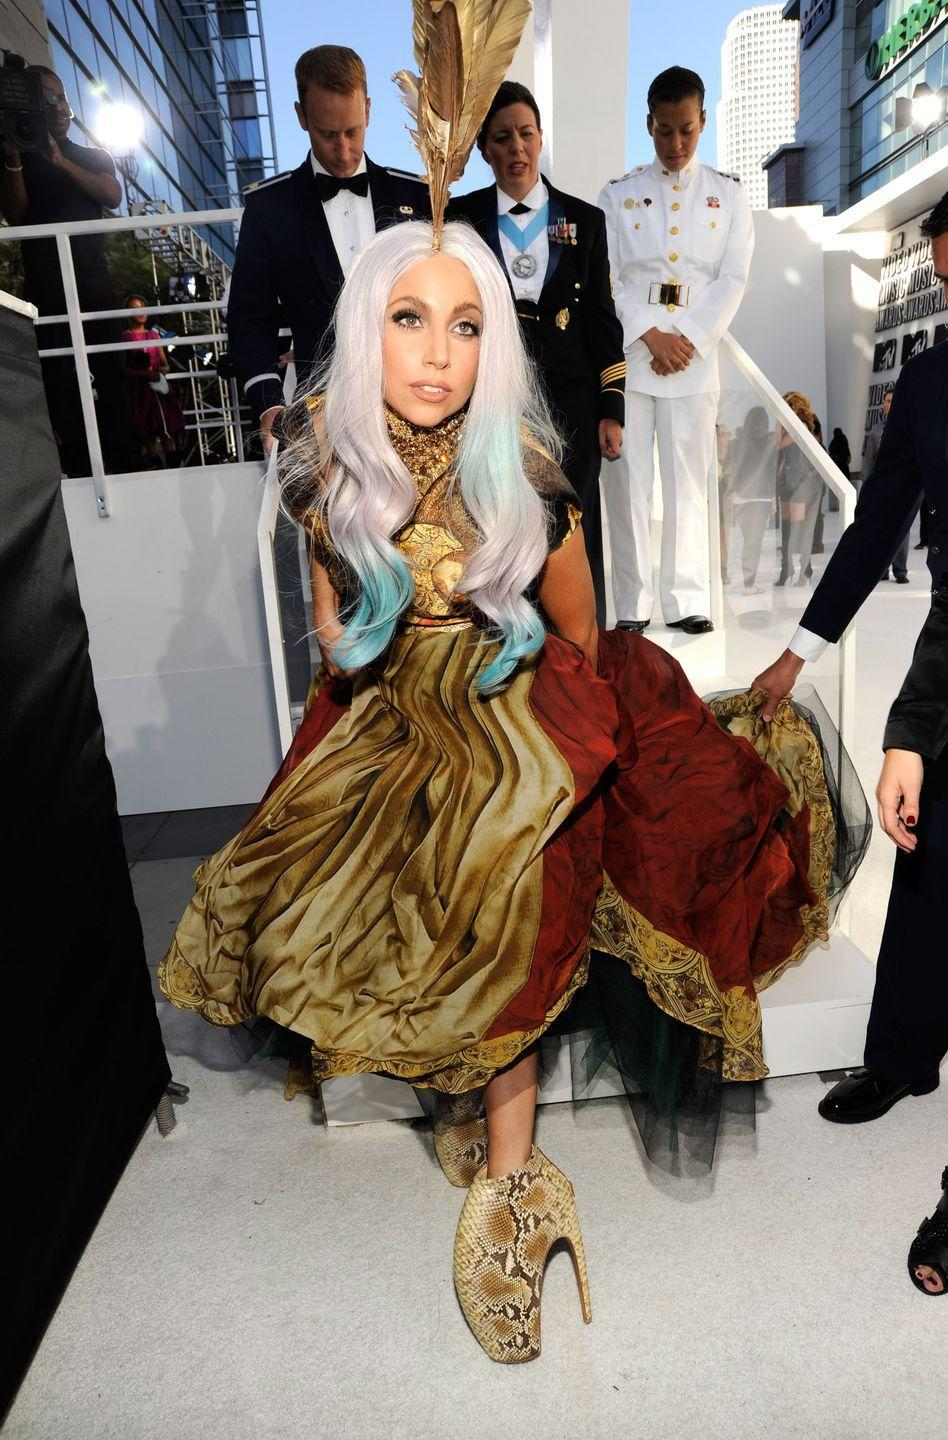 "<p>On the rise of fame, Lady Gaga <a href=""https://fashionista.com/2018/08/alexander-mcqueen-spring-2010-platos-atlantis"" rel=""nofollow noopener"" target=""_blank"" data-ylk=""slk:debuted her song"" class=""link rapid-noclick-resp"">debuted her song</a>, <em>Bad Romance,</em> at Alexander McQueen's Spring/Summer show in 2010. Models walked the runway in fantastical, 12-inch <a href=""https://www.metmuseum.org/art/collection/search/702246"" rel=""nofollow noopener"" target=""_blank"" data-ylk=""slk:Armadillo shoes"" class=""link rapid-noclick-resp"">Armadillo shoes</a> that left a lasting impression on the fashion industry. Gaga later wore the shoes in the <em>Bad Romance</em> music video, as well as on a slew of red carpets. They were the perfect accessory to her avant-garde style. </p>"